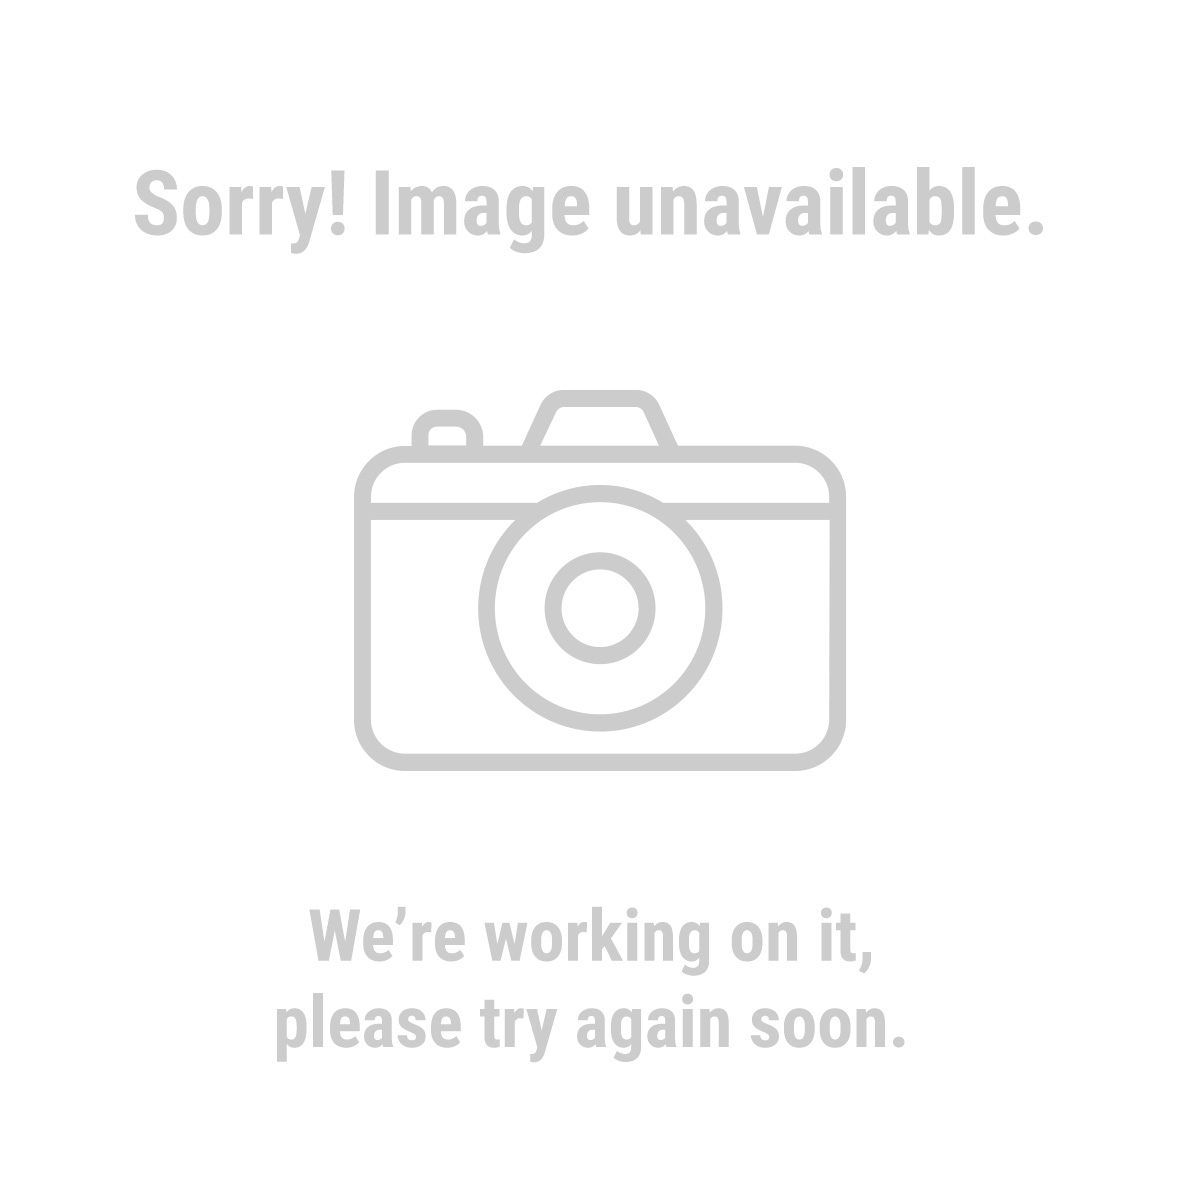 Chicago Electric Power Tools 68298 4 in. Dry-Cut Handheld Tile Saw